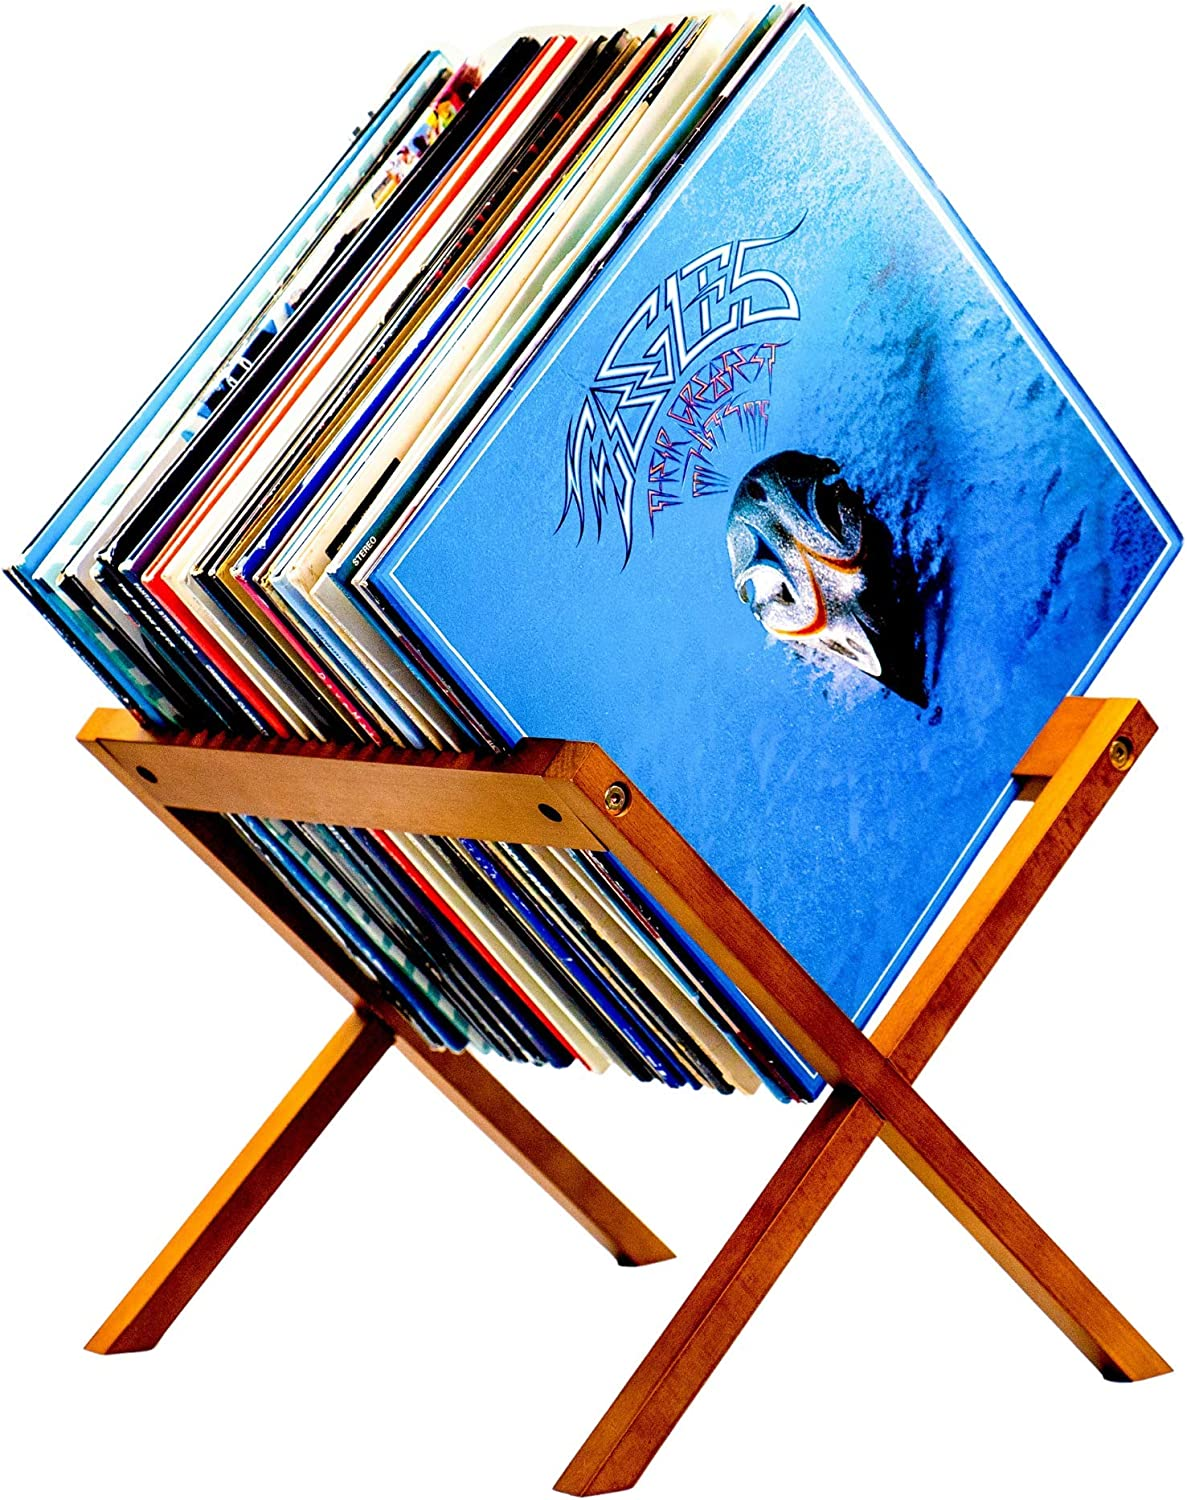 """The HHC Vinyl Record Holder, Single and Double Vinyl Storage, Modern Wooden Record Display Rack for 12""""x12"""" Albums, Vinyl Record Storage Stand, LP Album Storage Organizer, Record Crate Box Alternative"""